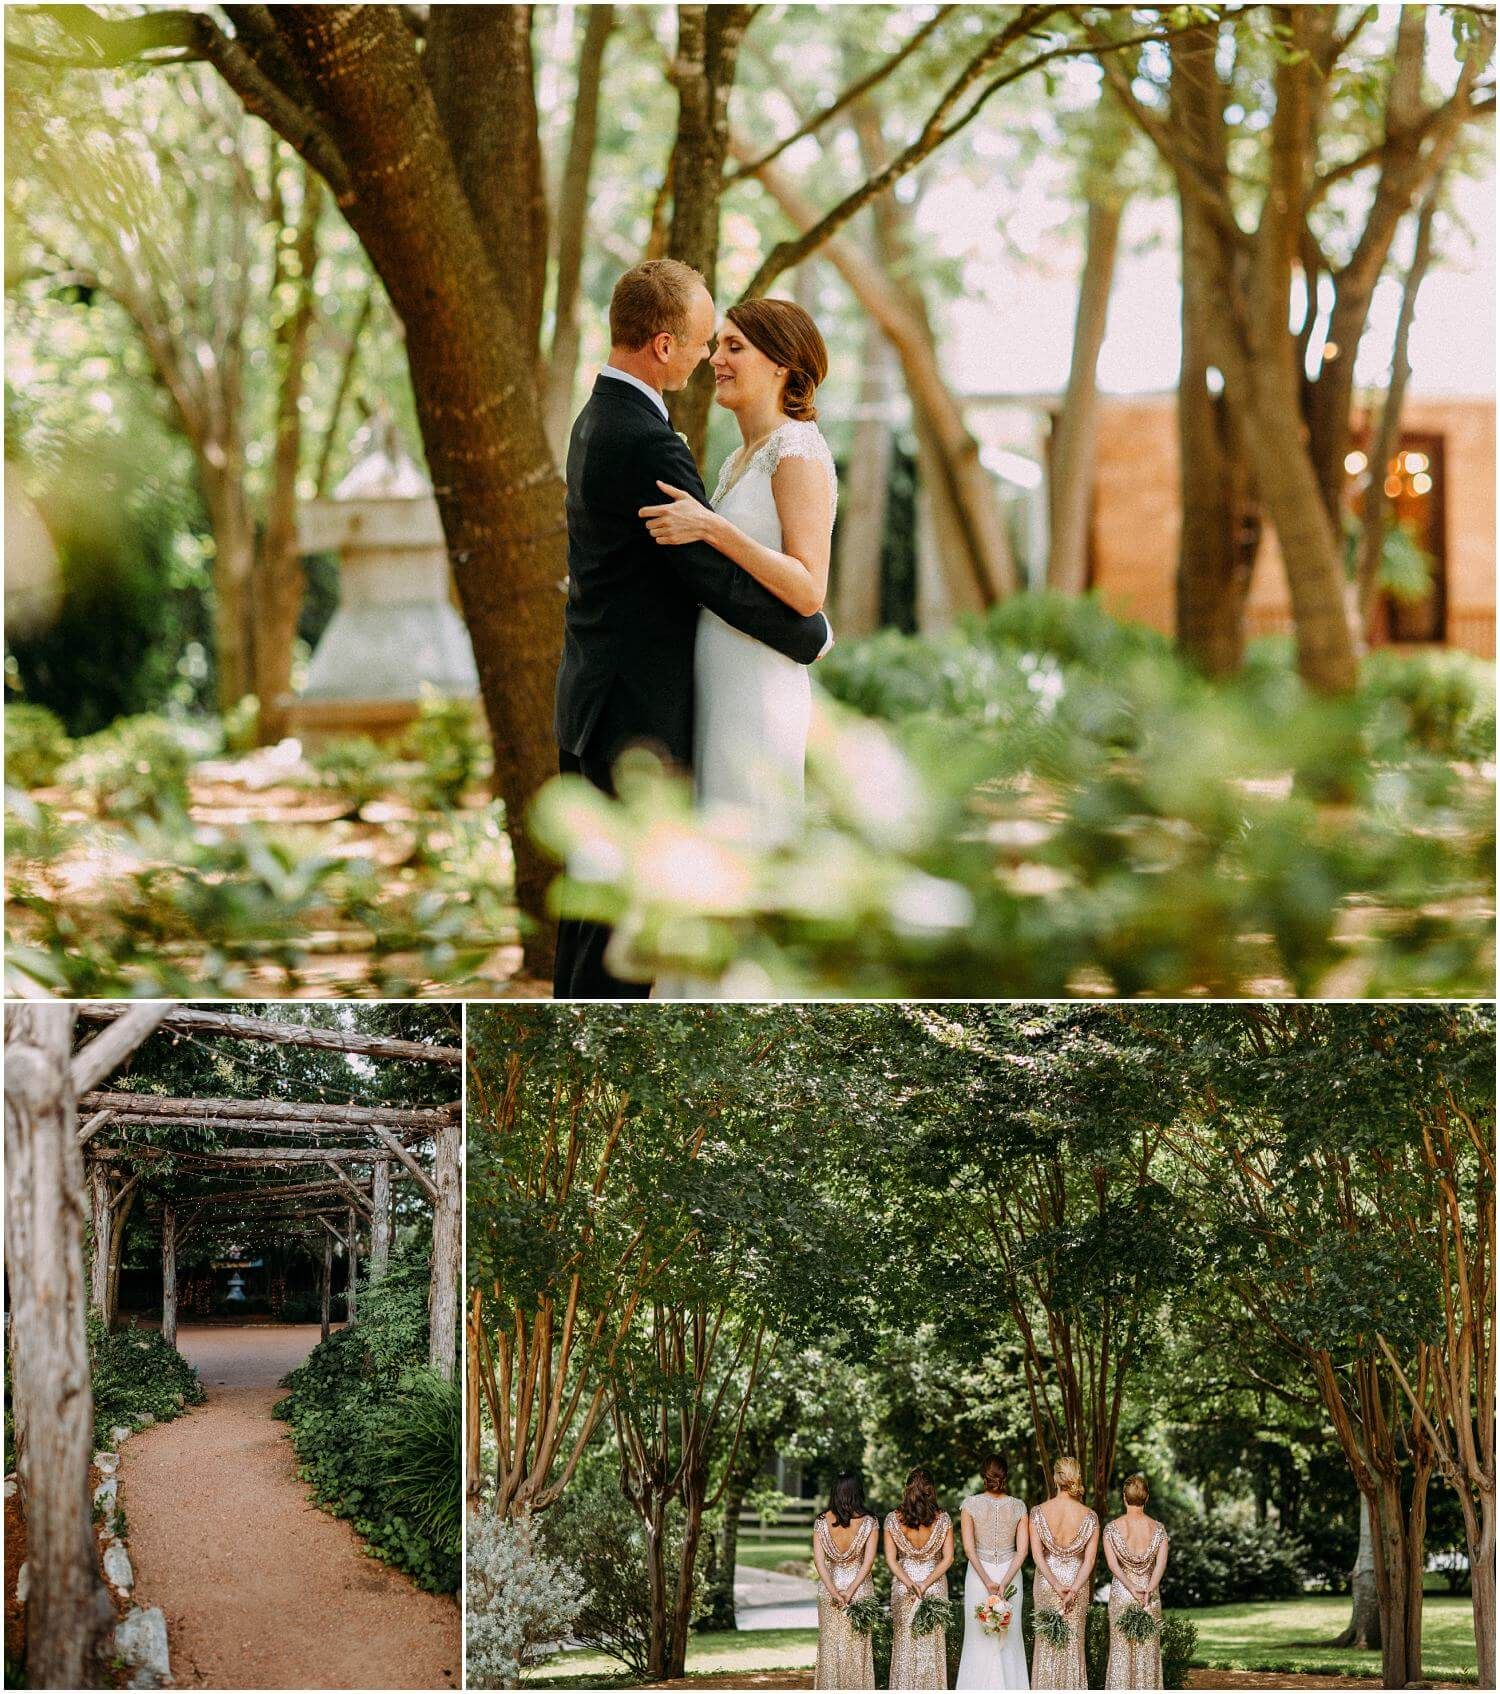 Hill country wedding venue feature hoffman haus